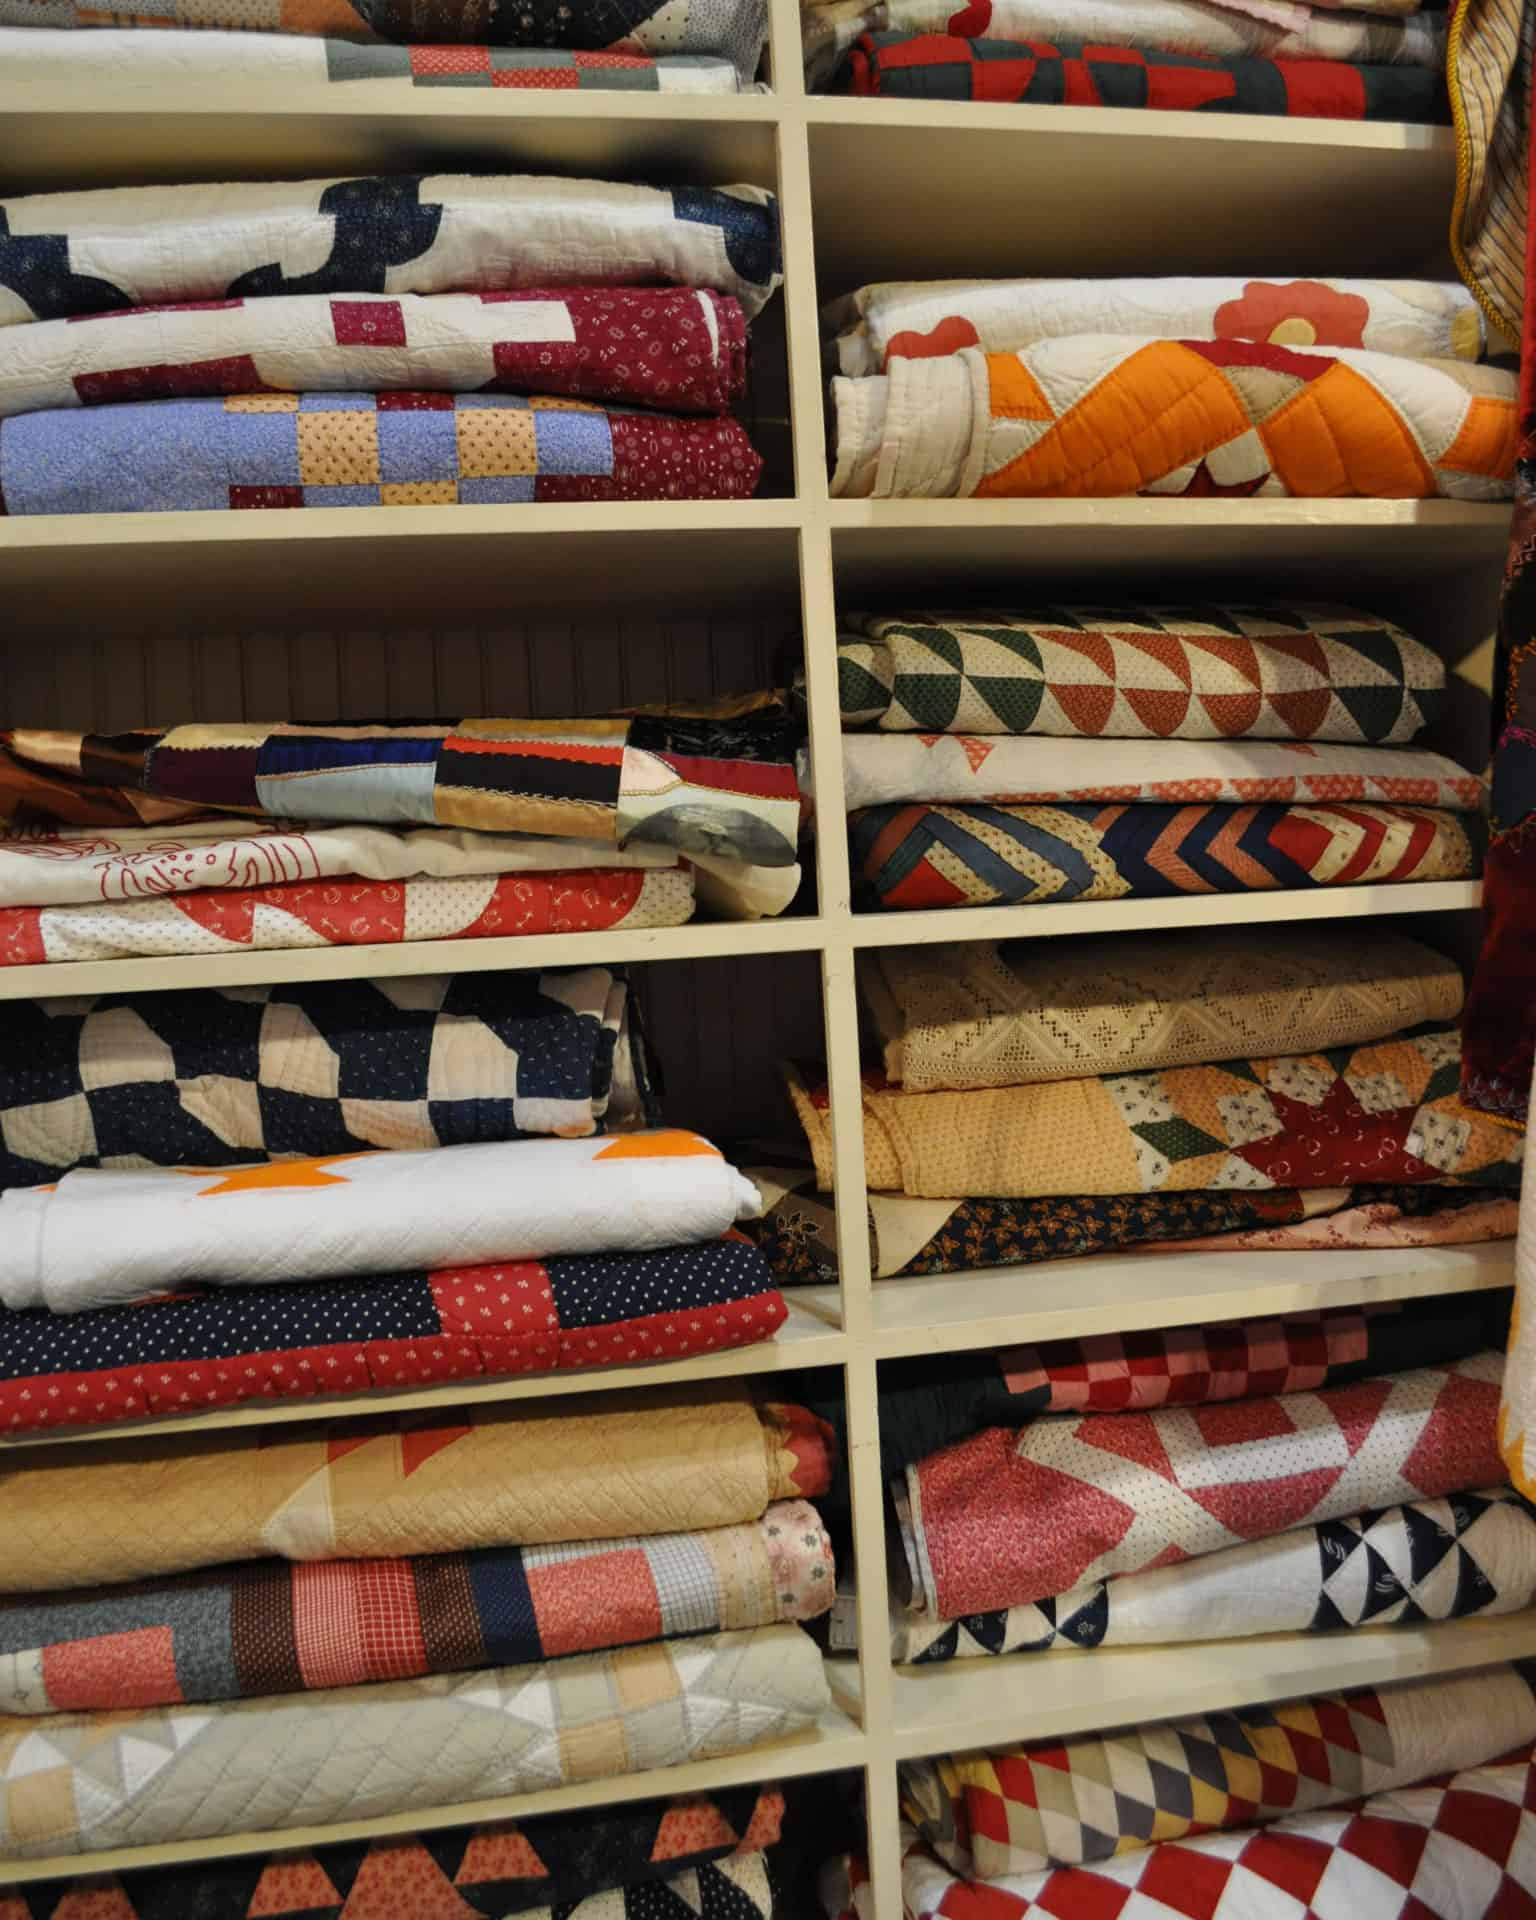 Shelves of quilts